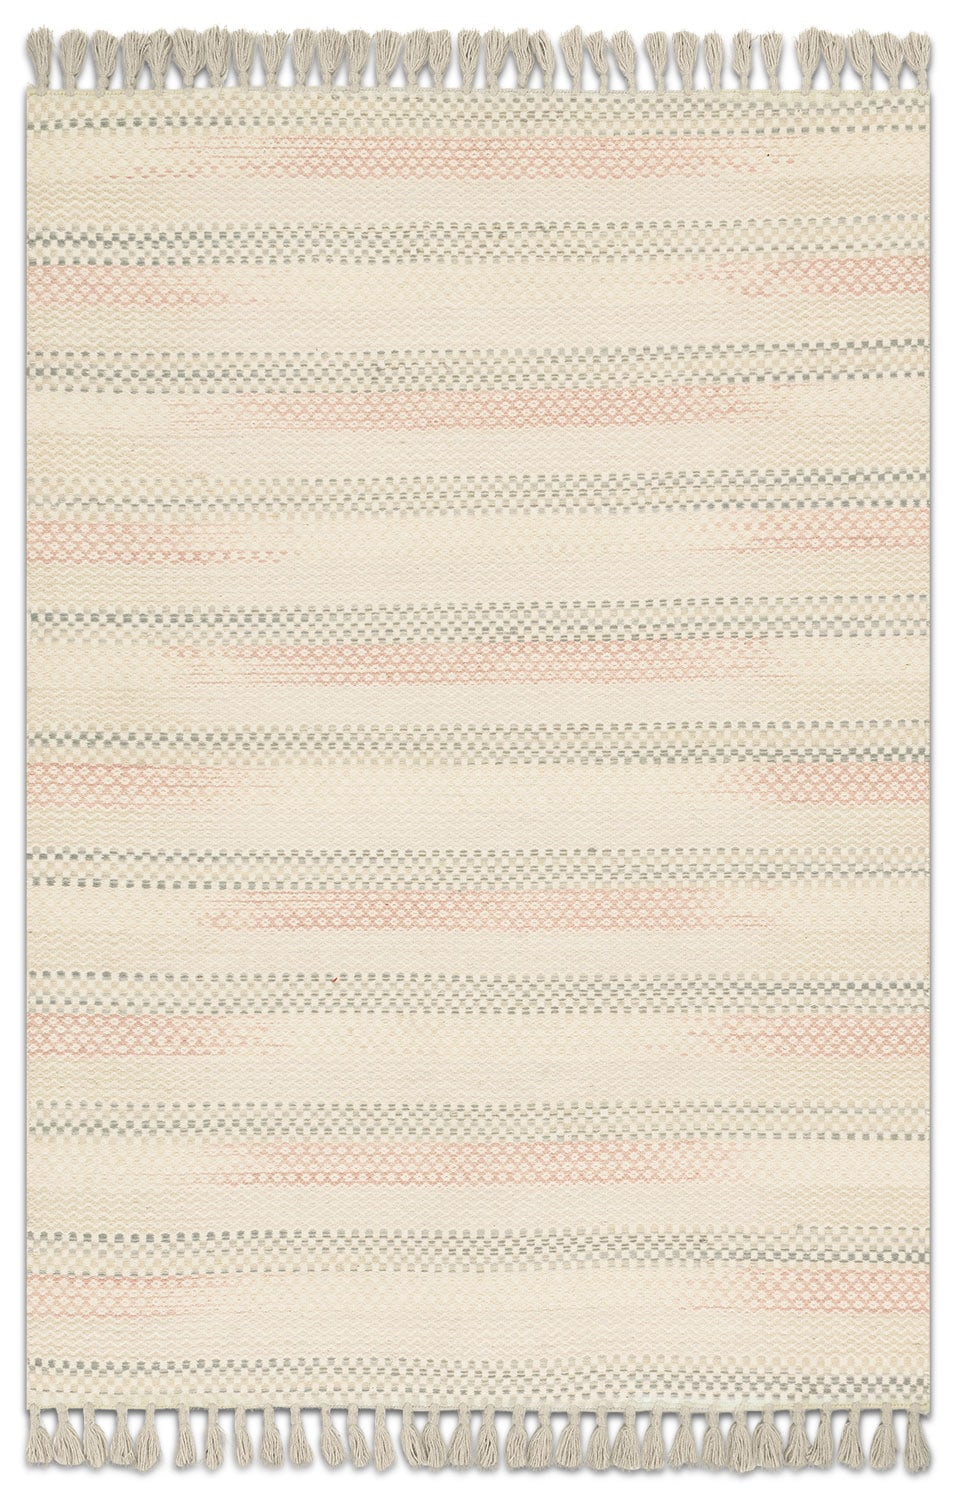 Rugs - Chantilly 5' x 8' Rug - Multi Ivory